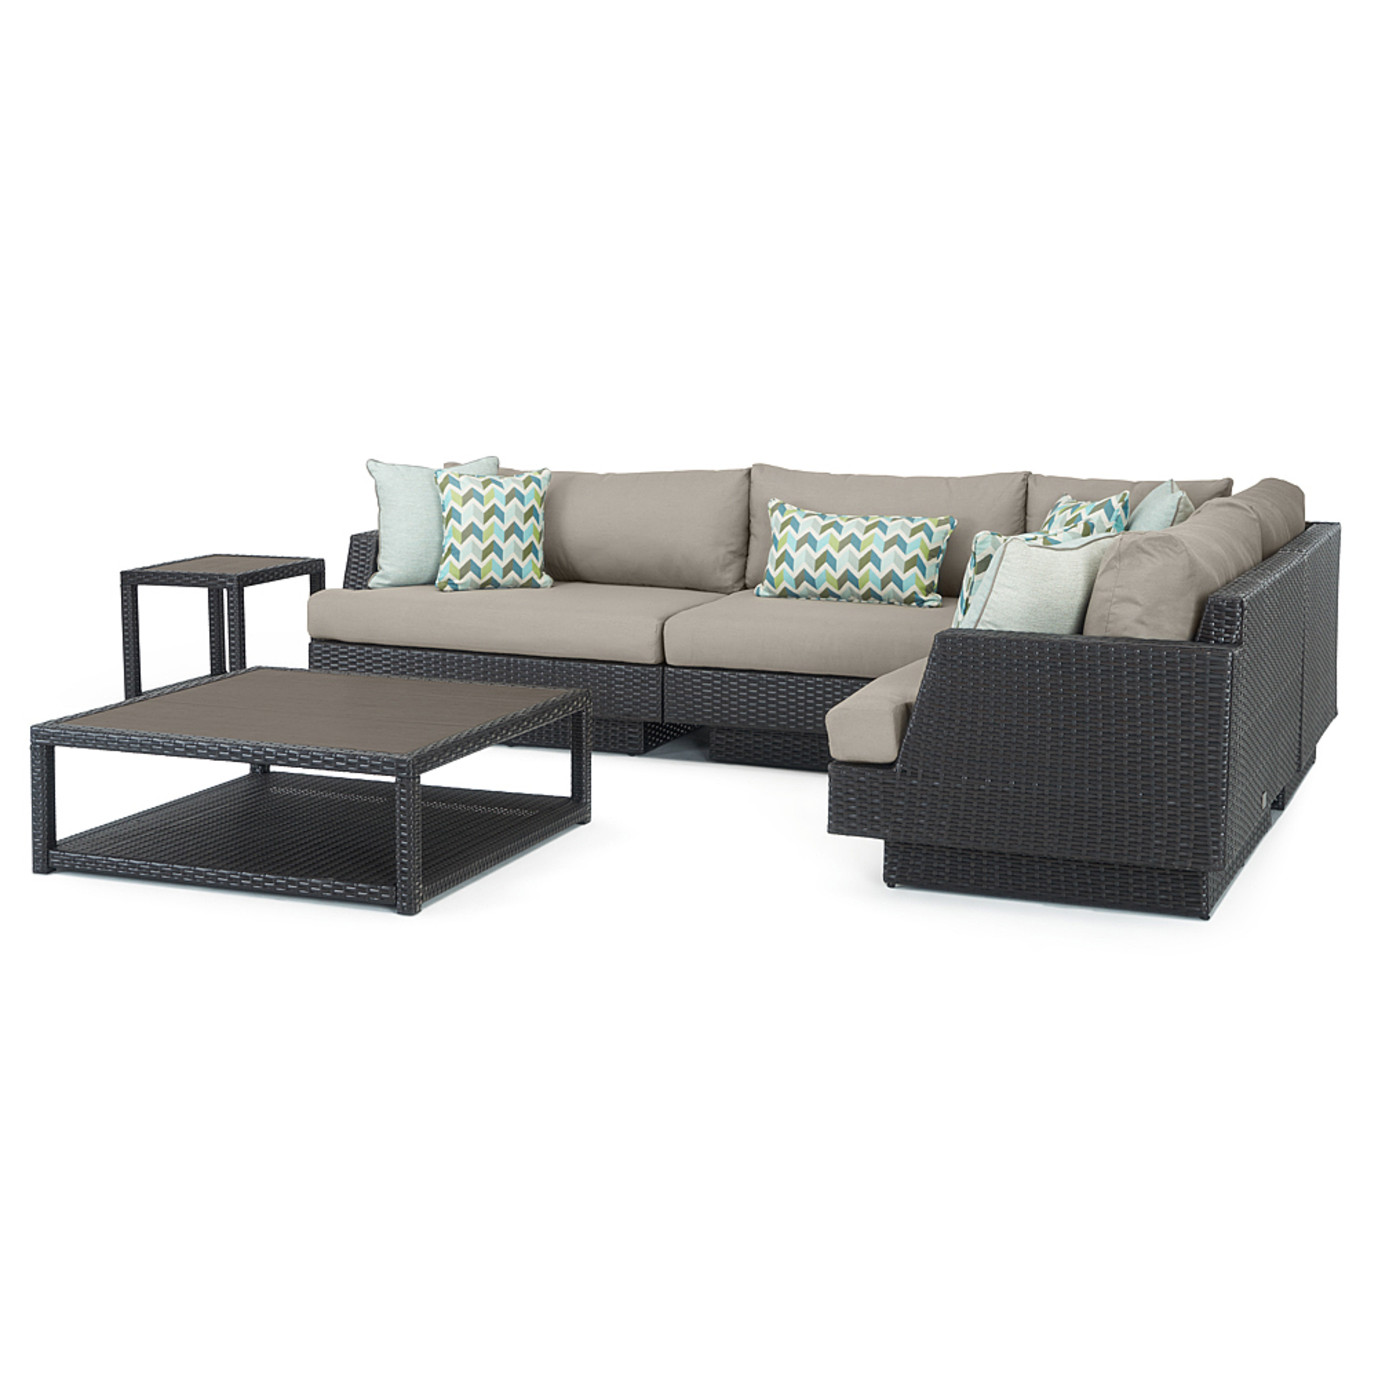 Portofino® Comfort 6 Piece Wood Sectional Seating - Taupe Mist